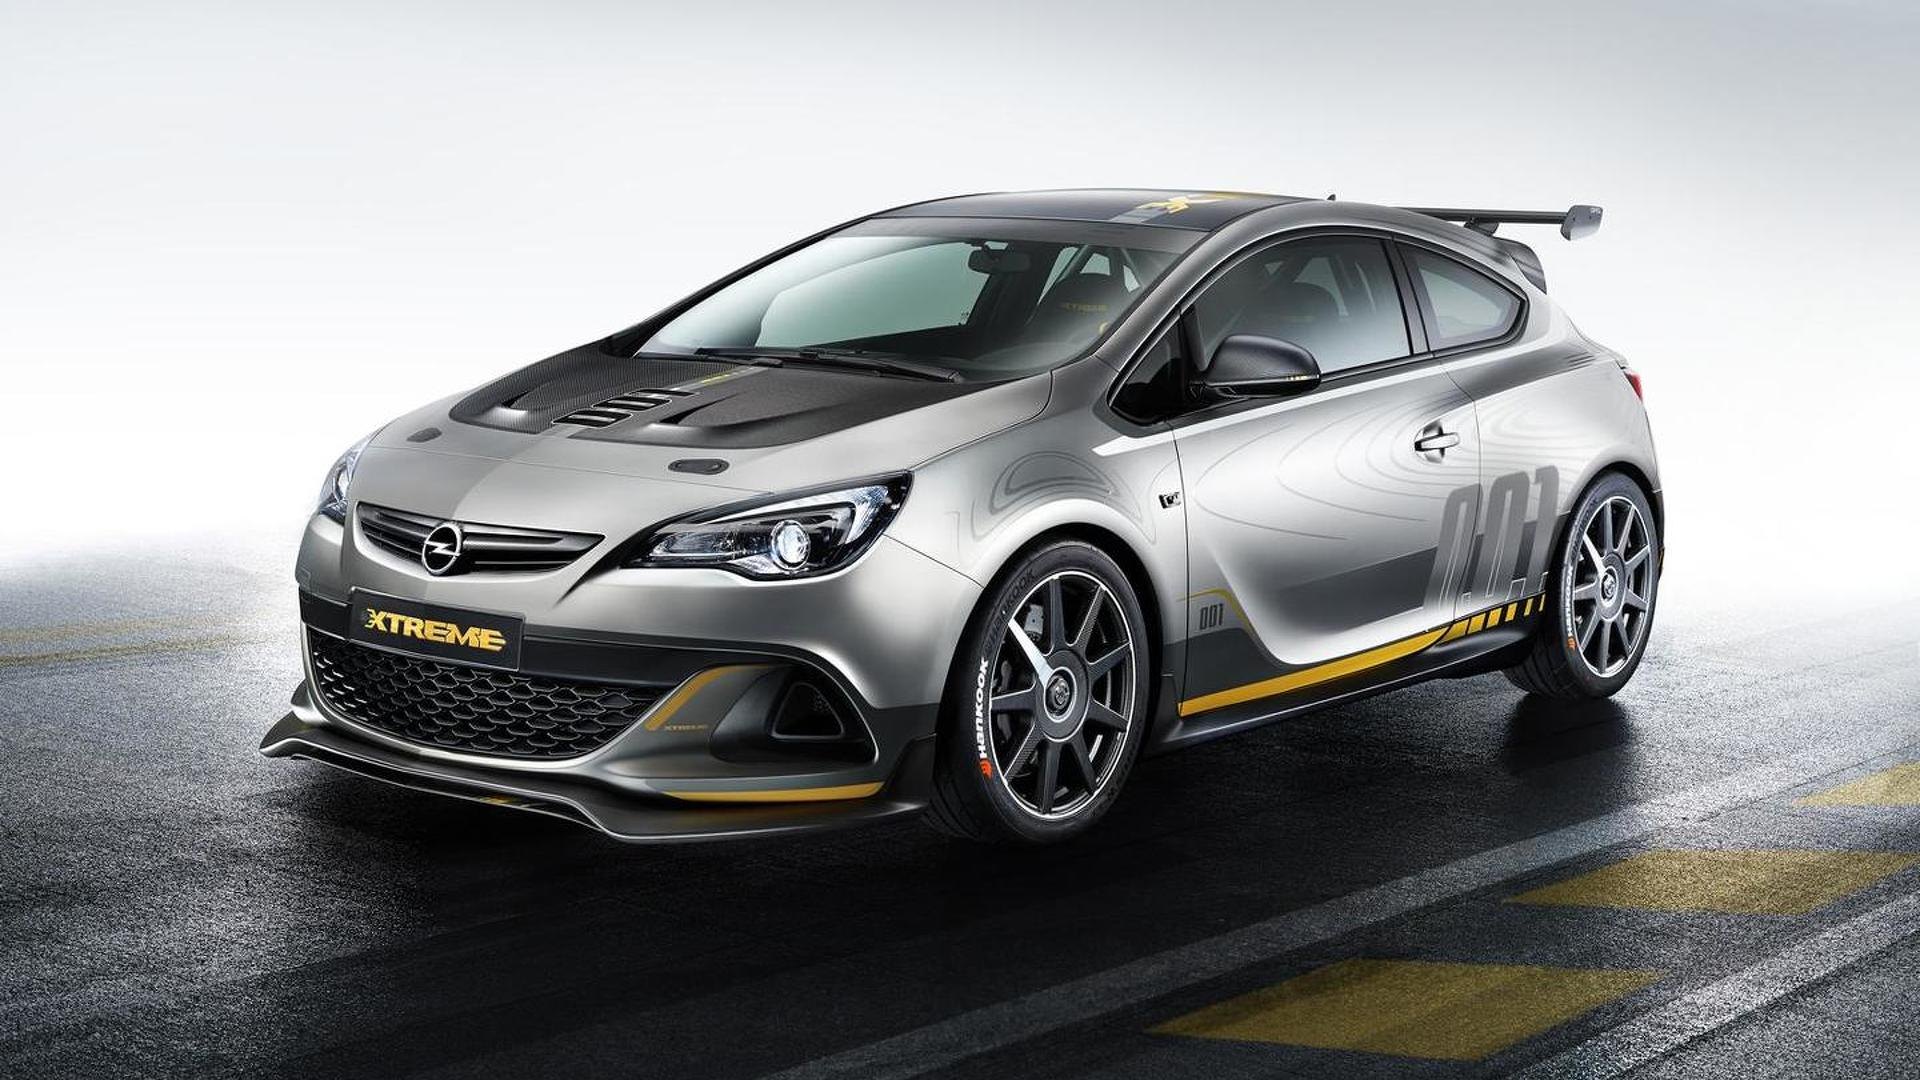 opel confirms next-gen astra opc coming 2017 with 280 bhp 1.6-liter